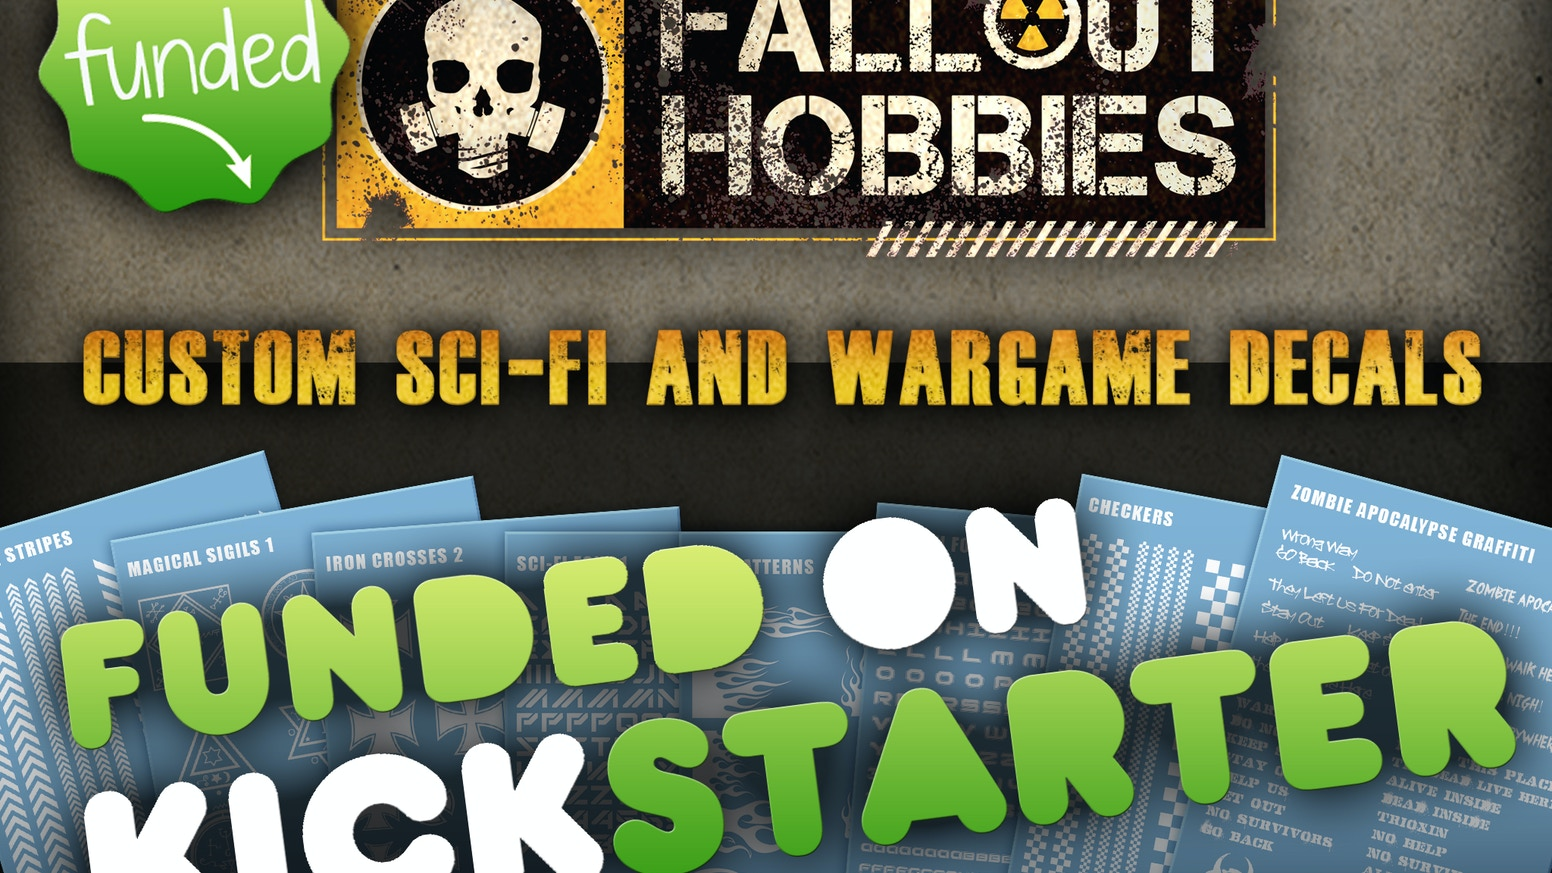 Fallout hobbies makes custom waterslide decals easy to order for sci fi and tabletop wargame